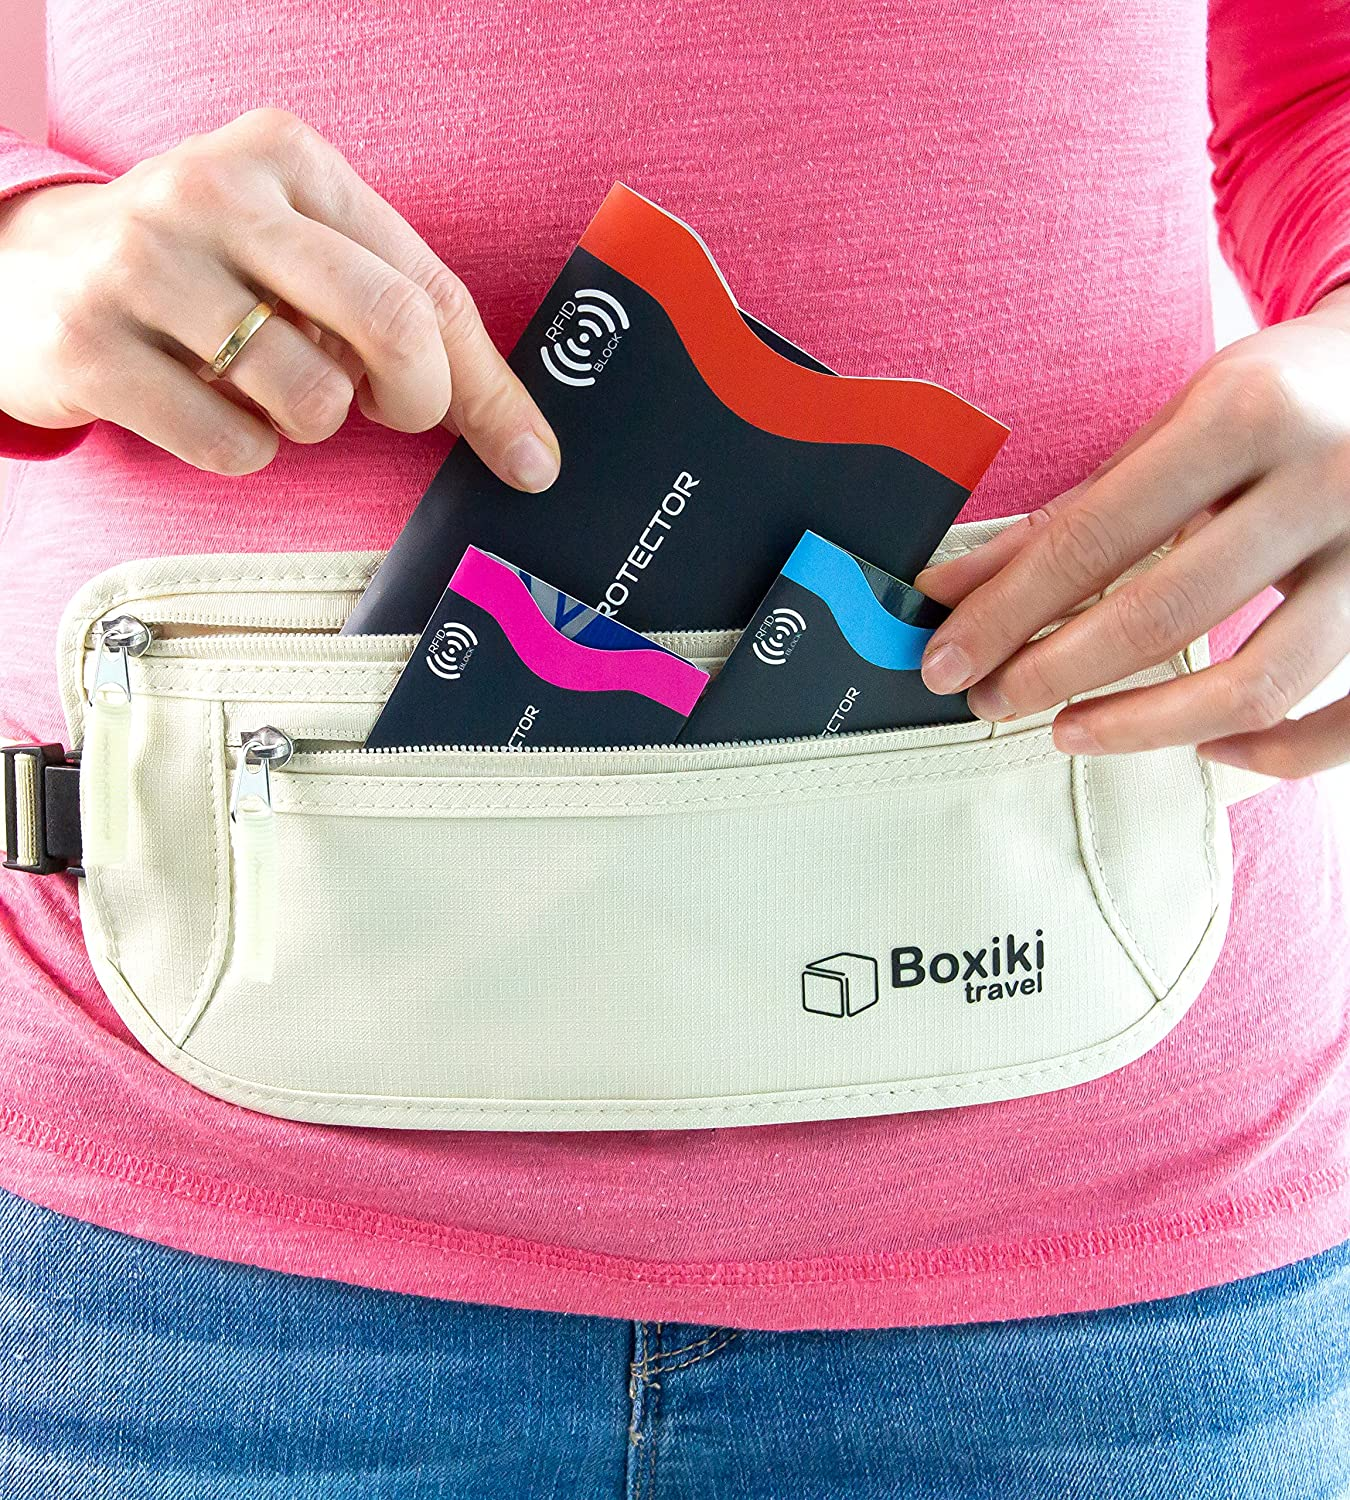 RFID Blocking Sleeves, Set with Color Coding. Identity Theft Prevention RFID Credit Card Holders by Boxiki Travel (Set of 12 Credit Card Protector Sleeves + 3 Passport Holders) (Navy Blue): Office Products